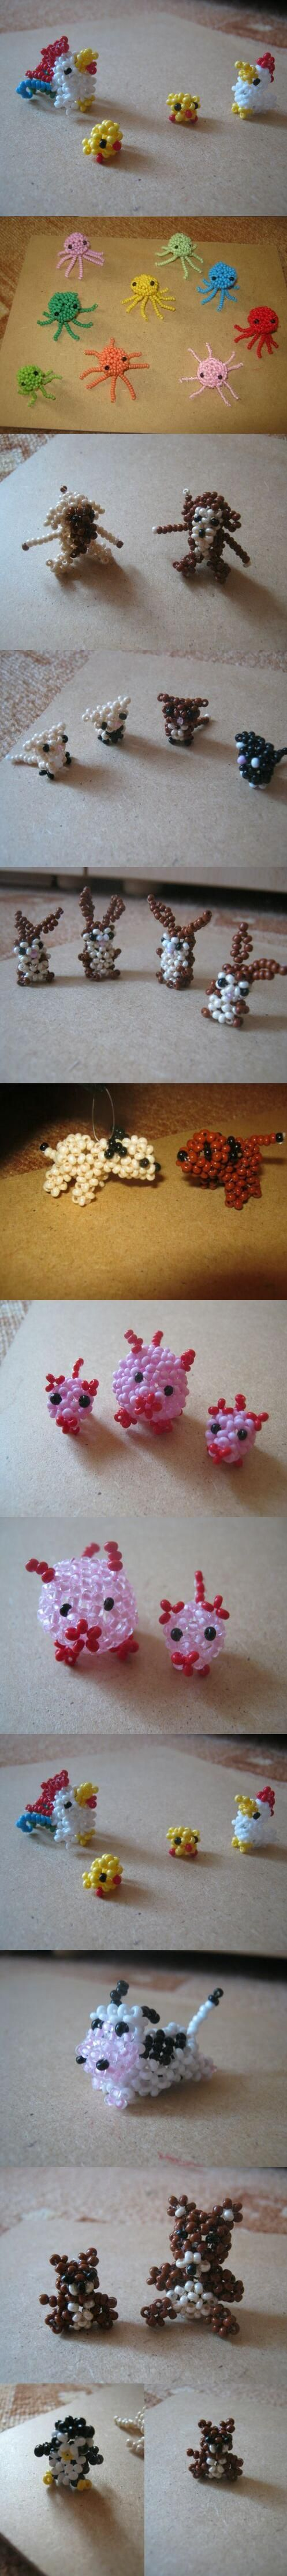 japanese minianimals: hens, octopuses, monkeys, cats, hares, dogs, pigs, cow, bears, penguin and bear cub